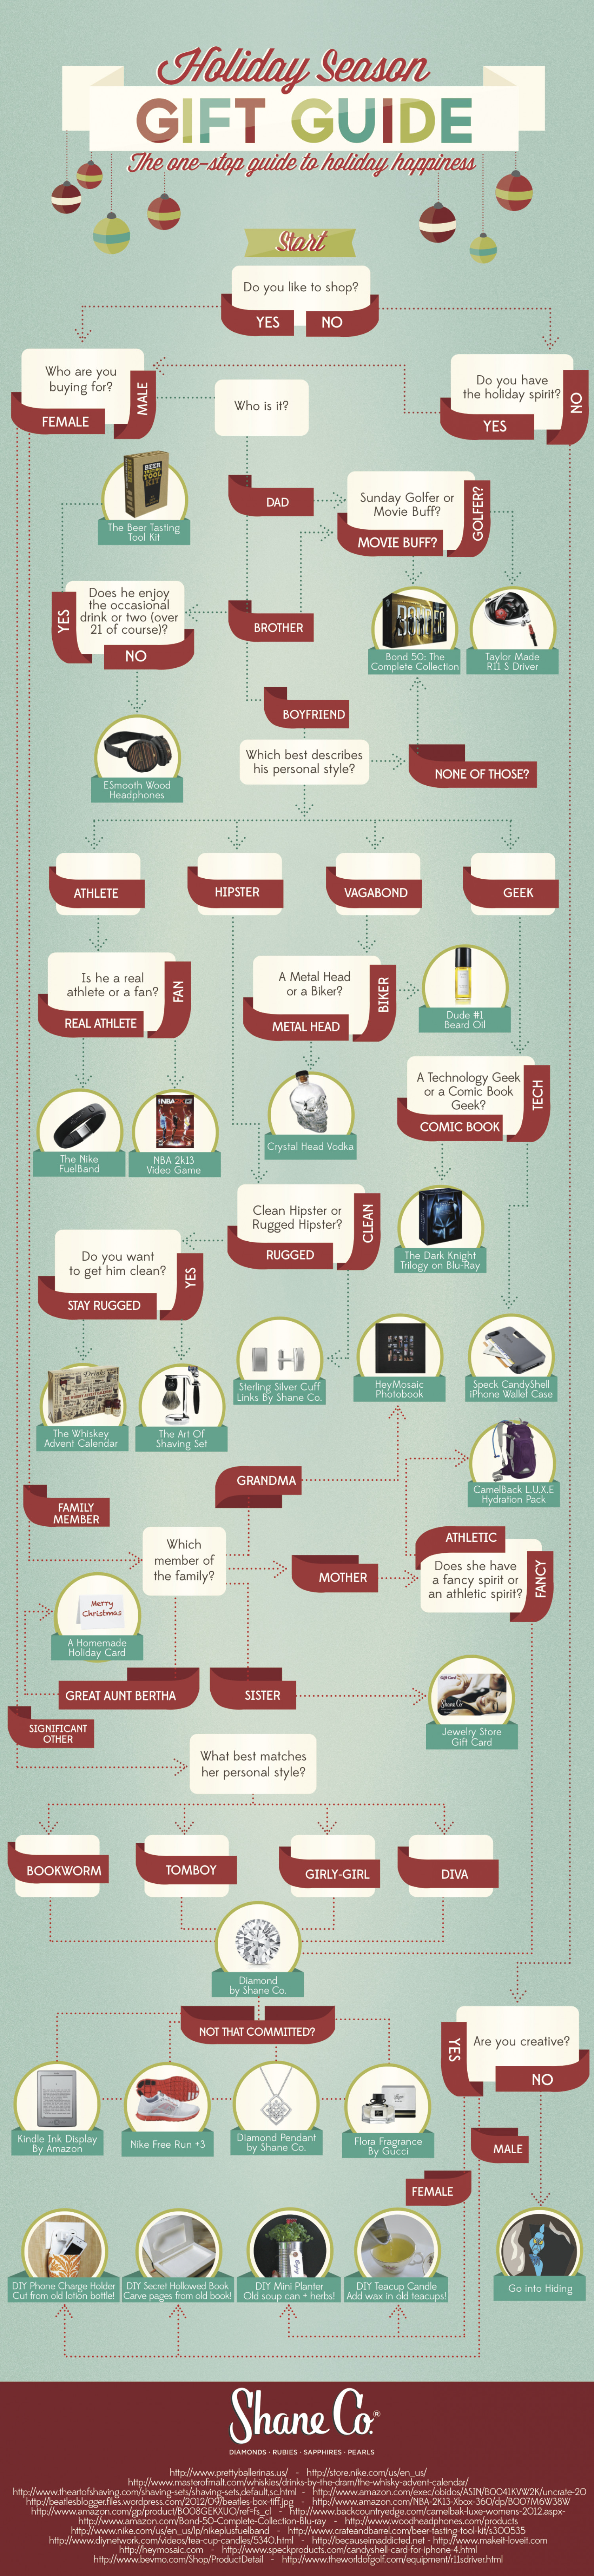 Holiday Season Gift Guide Infographic